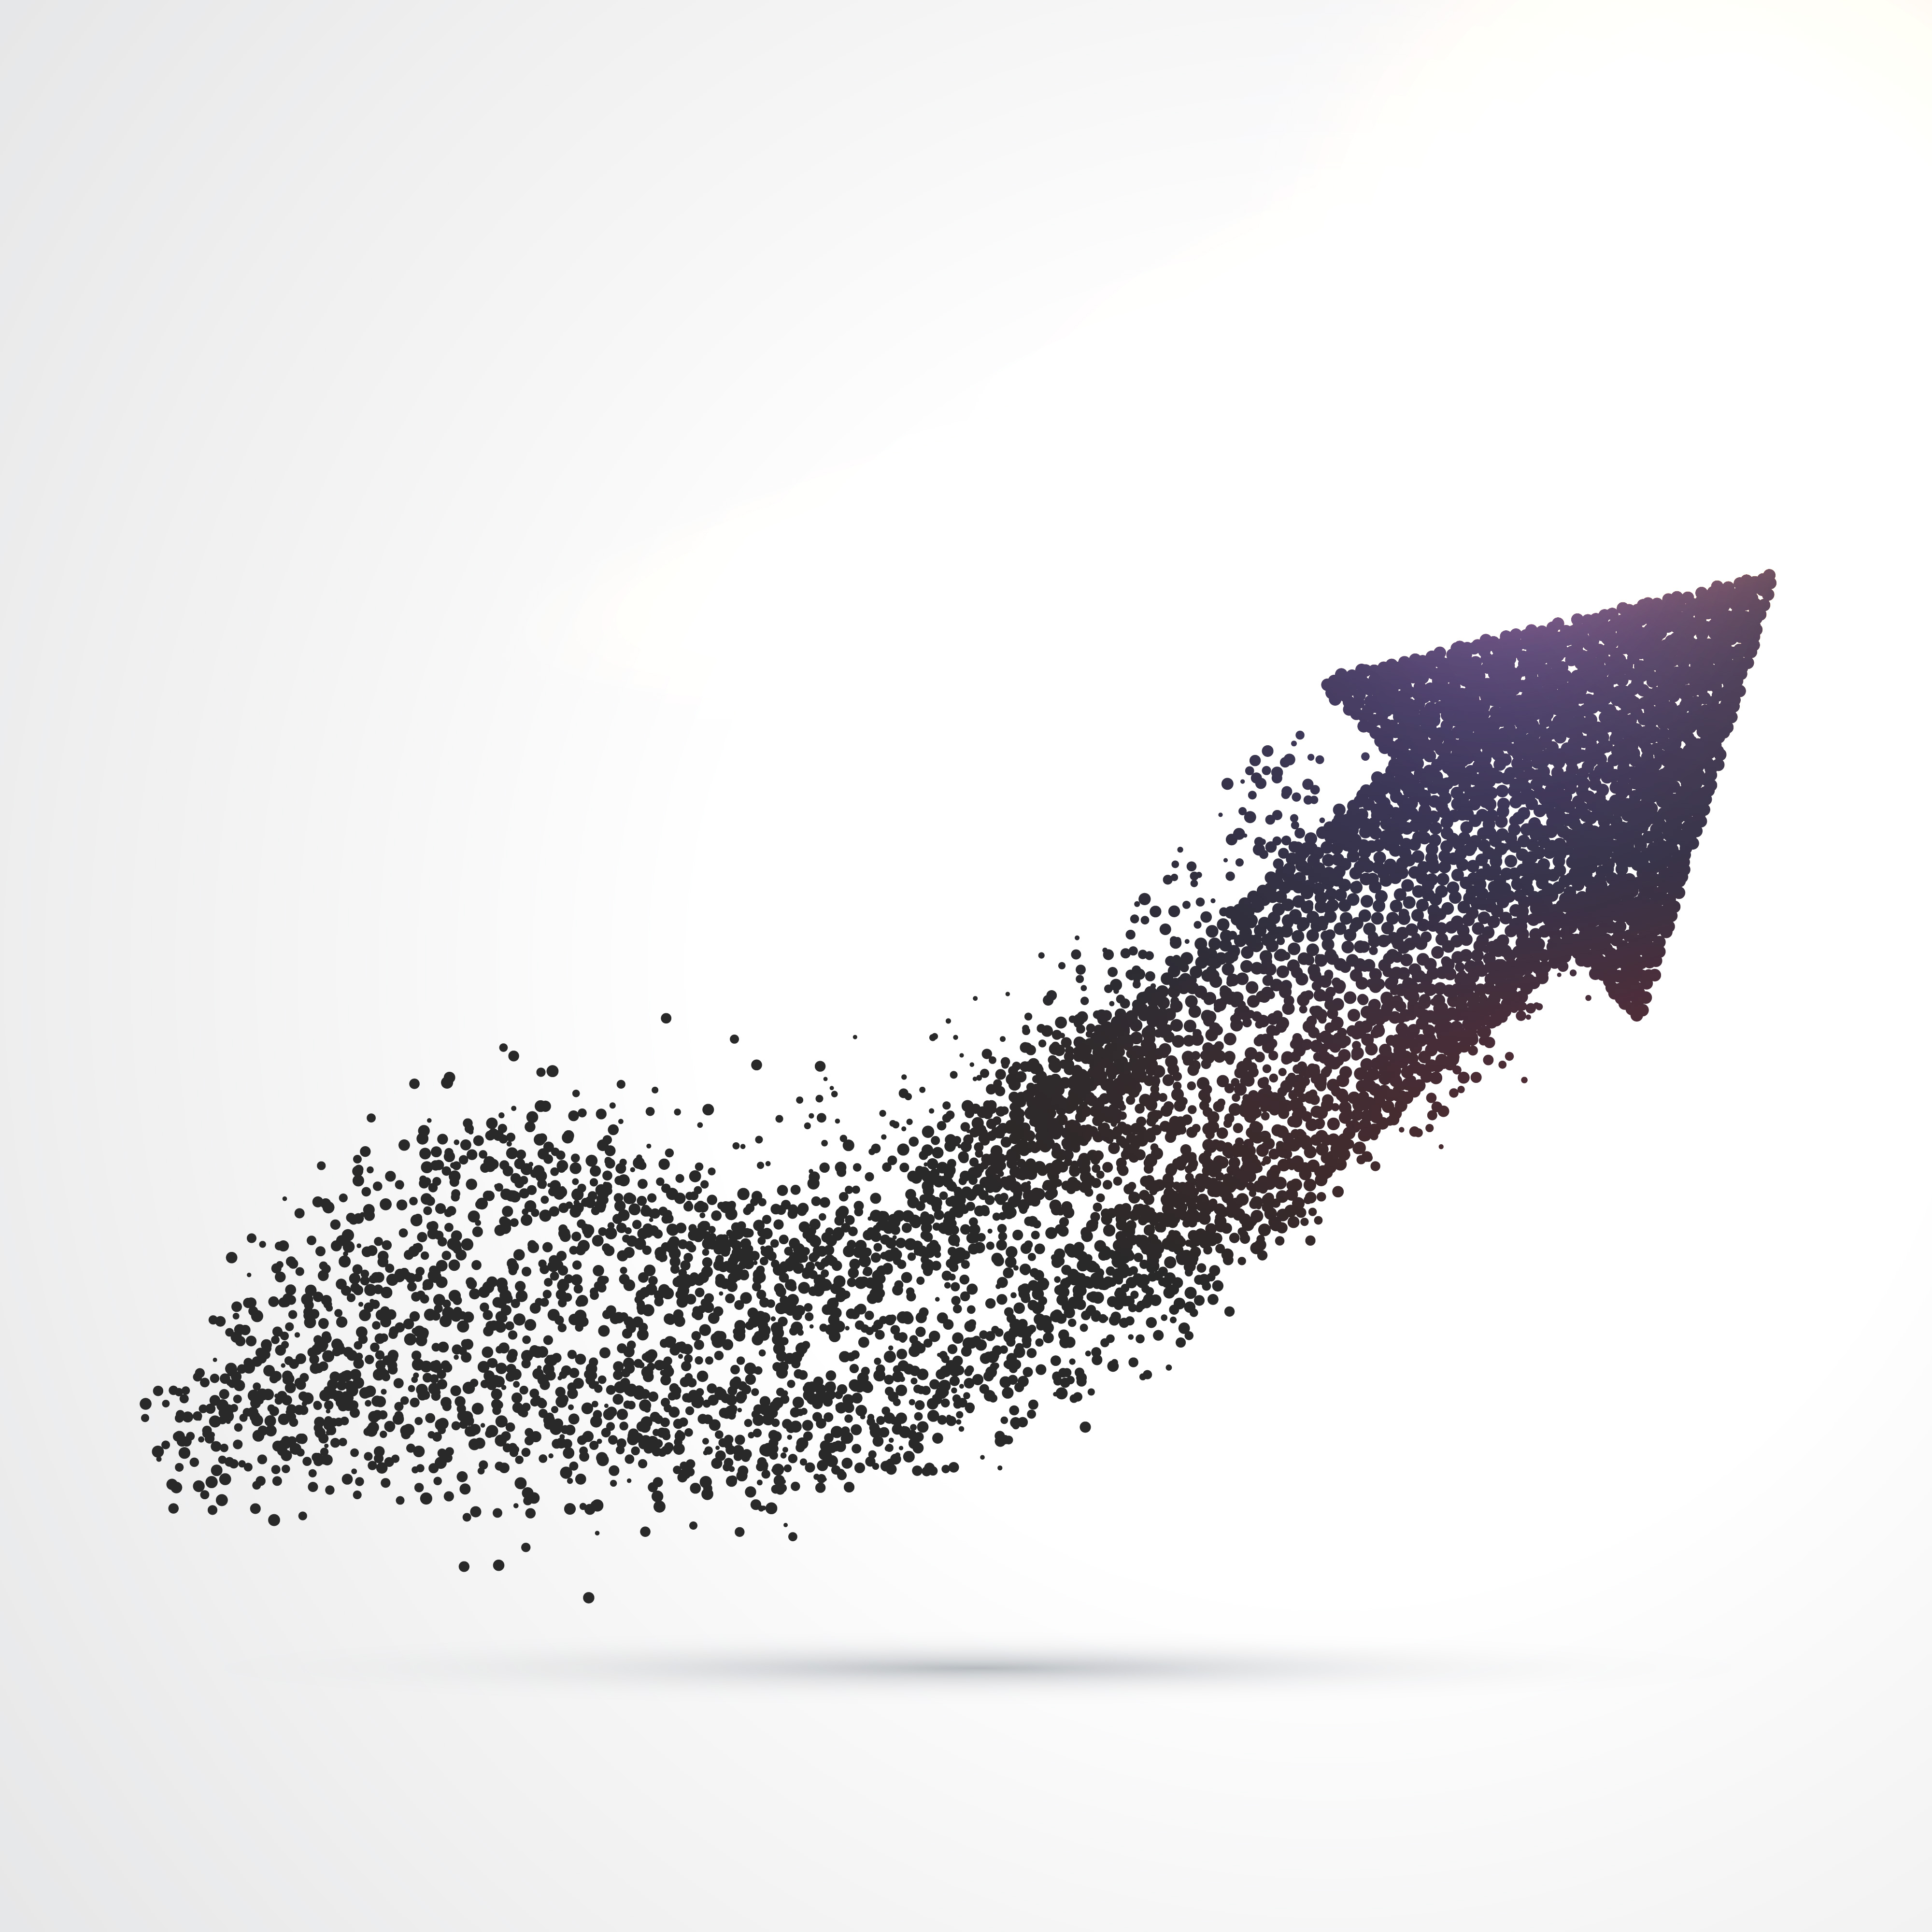 Abstract Arrow Design Made With Particles Download Free